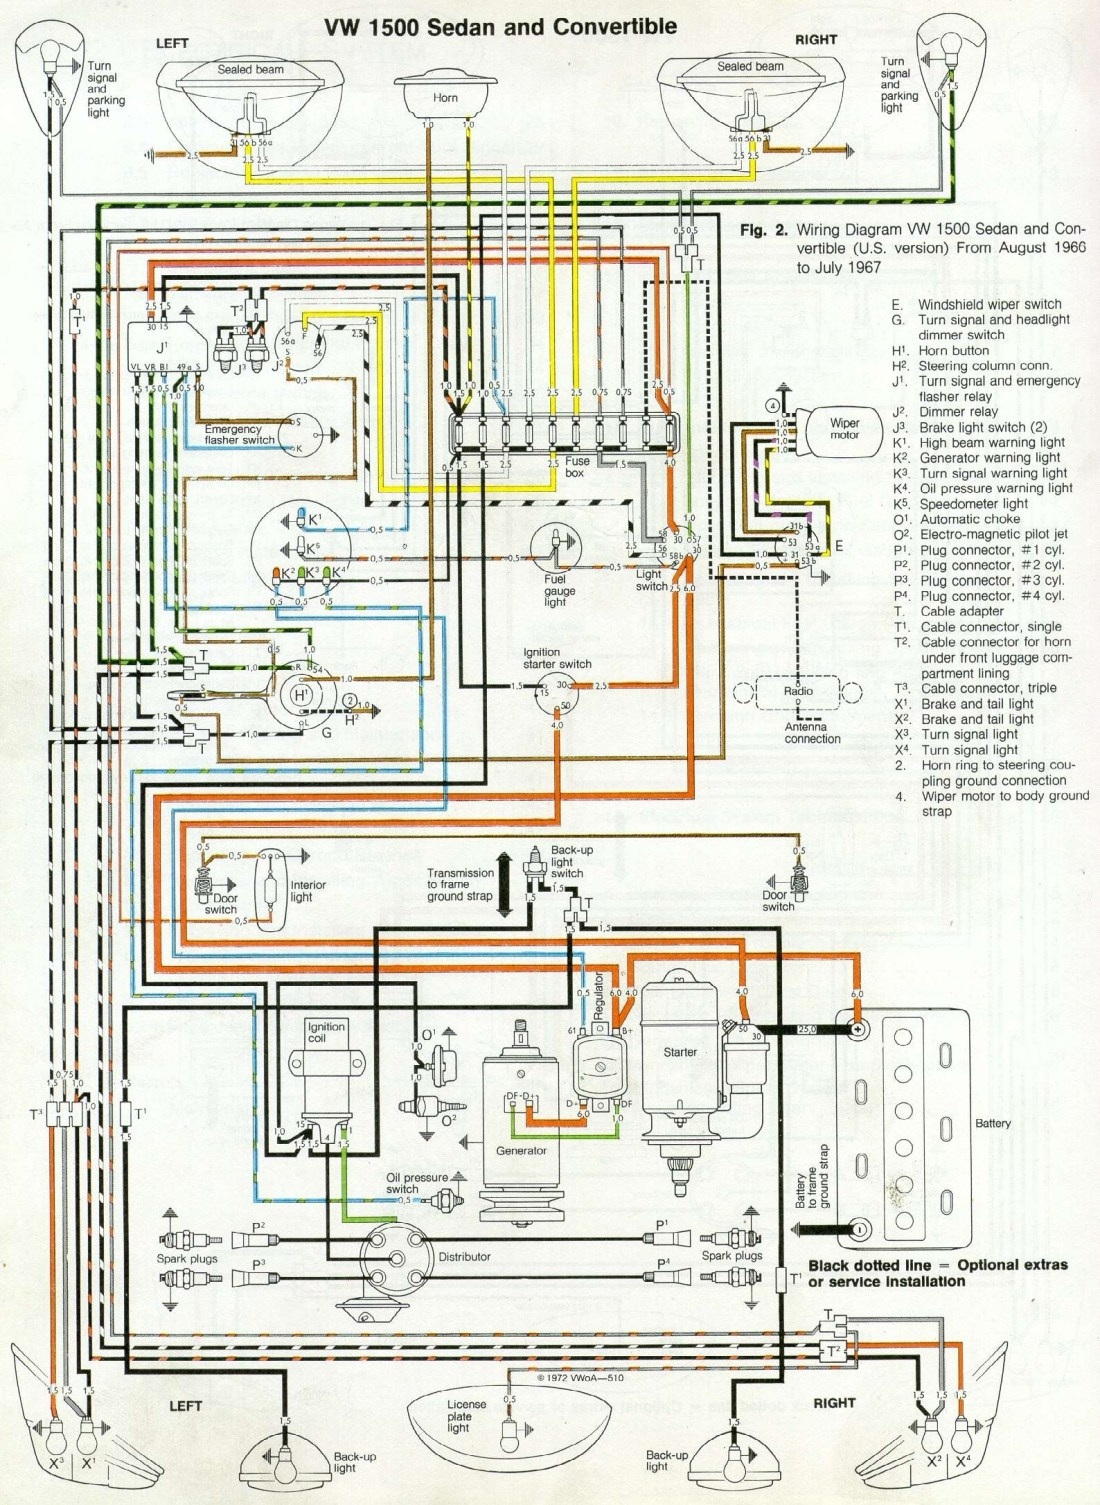 '66 and '67 VW Beetle Wiring Diagram - 1967 VW Beetle